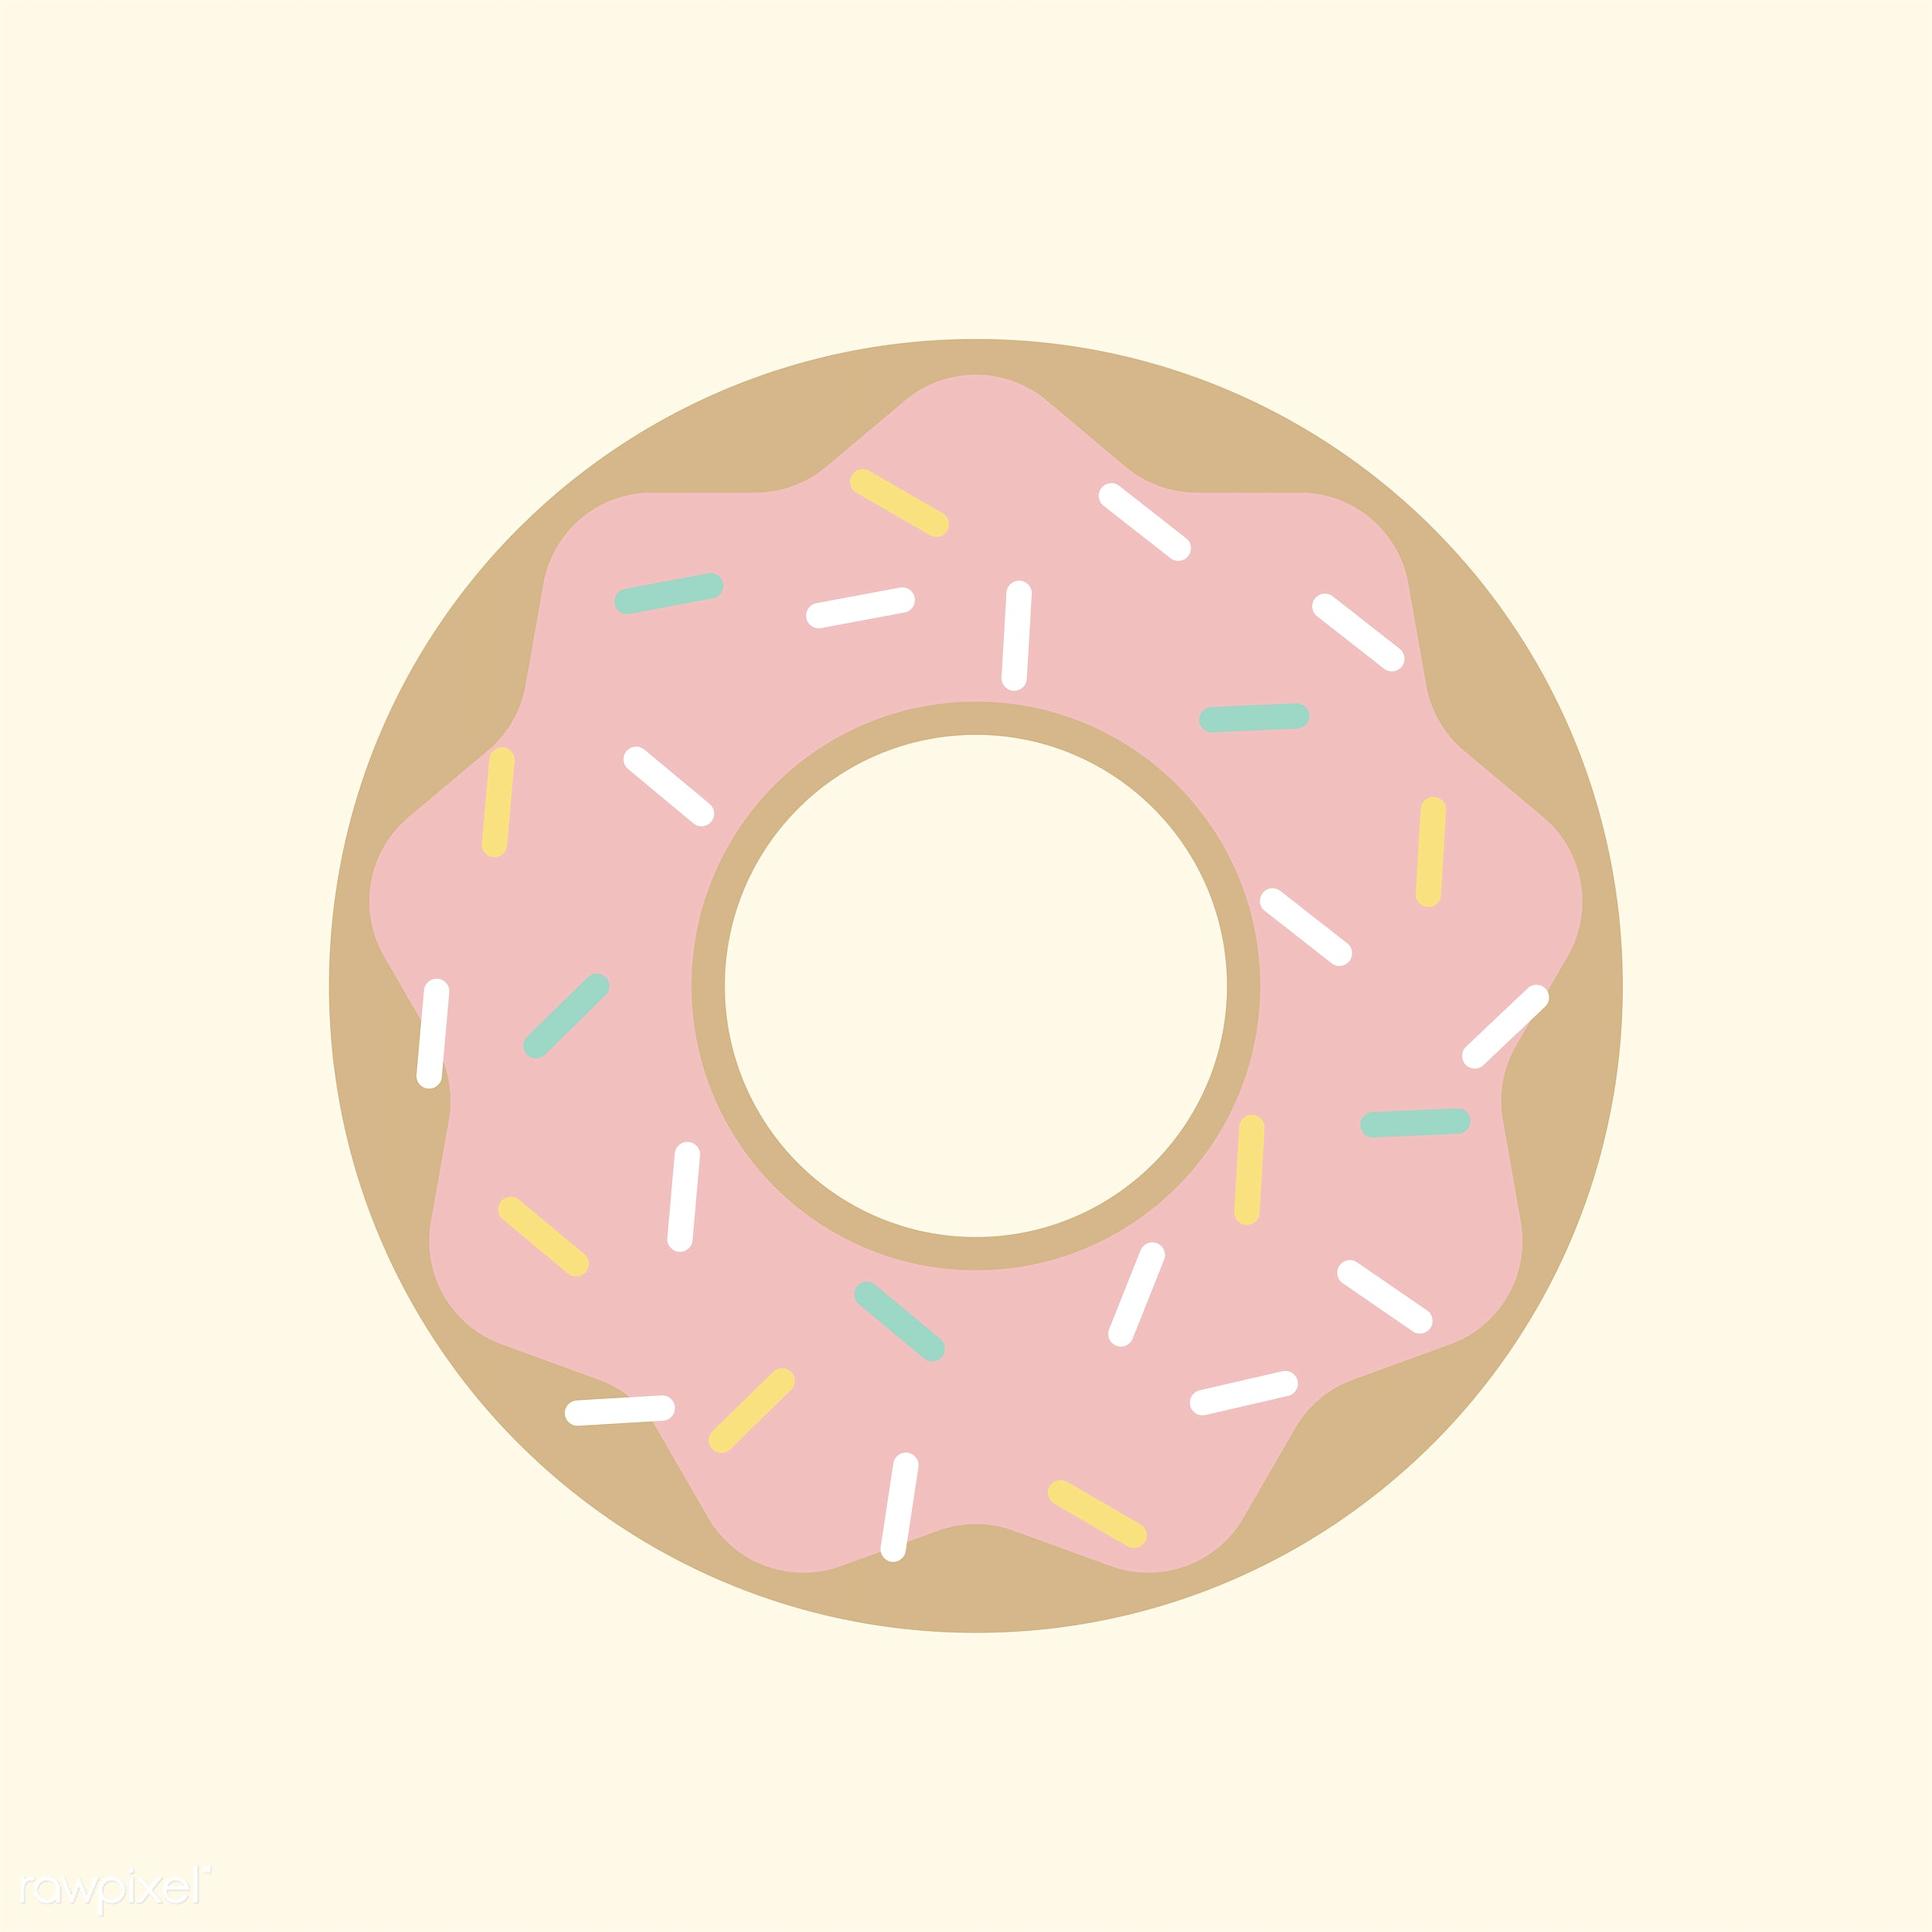 vector, illustration, graphic, cute, sweet, girly, pastel, donut, doughnut, pastry